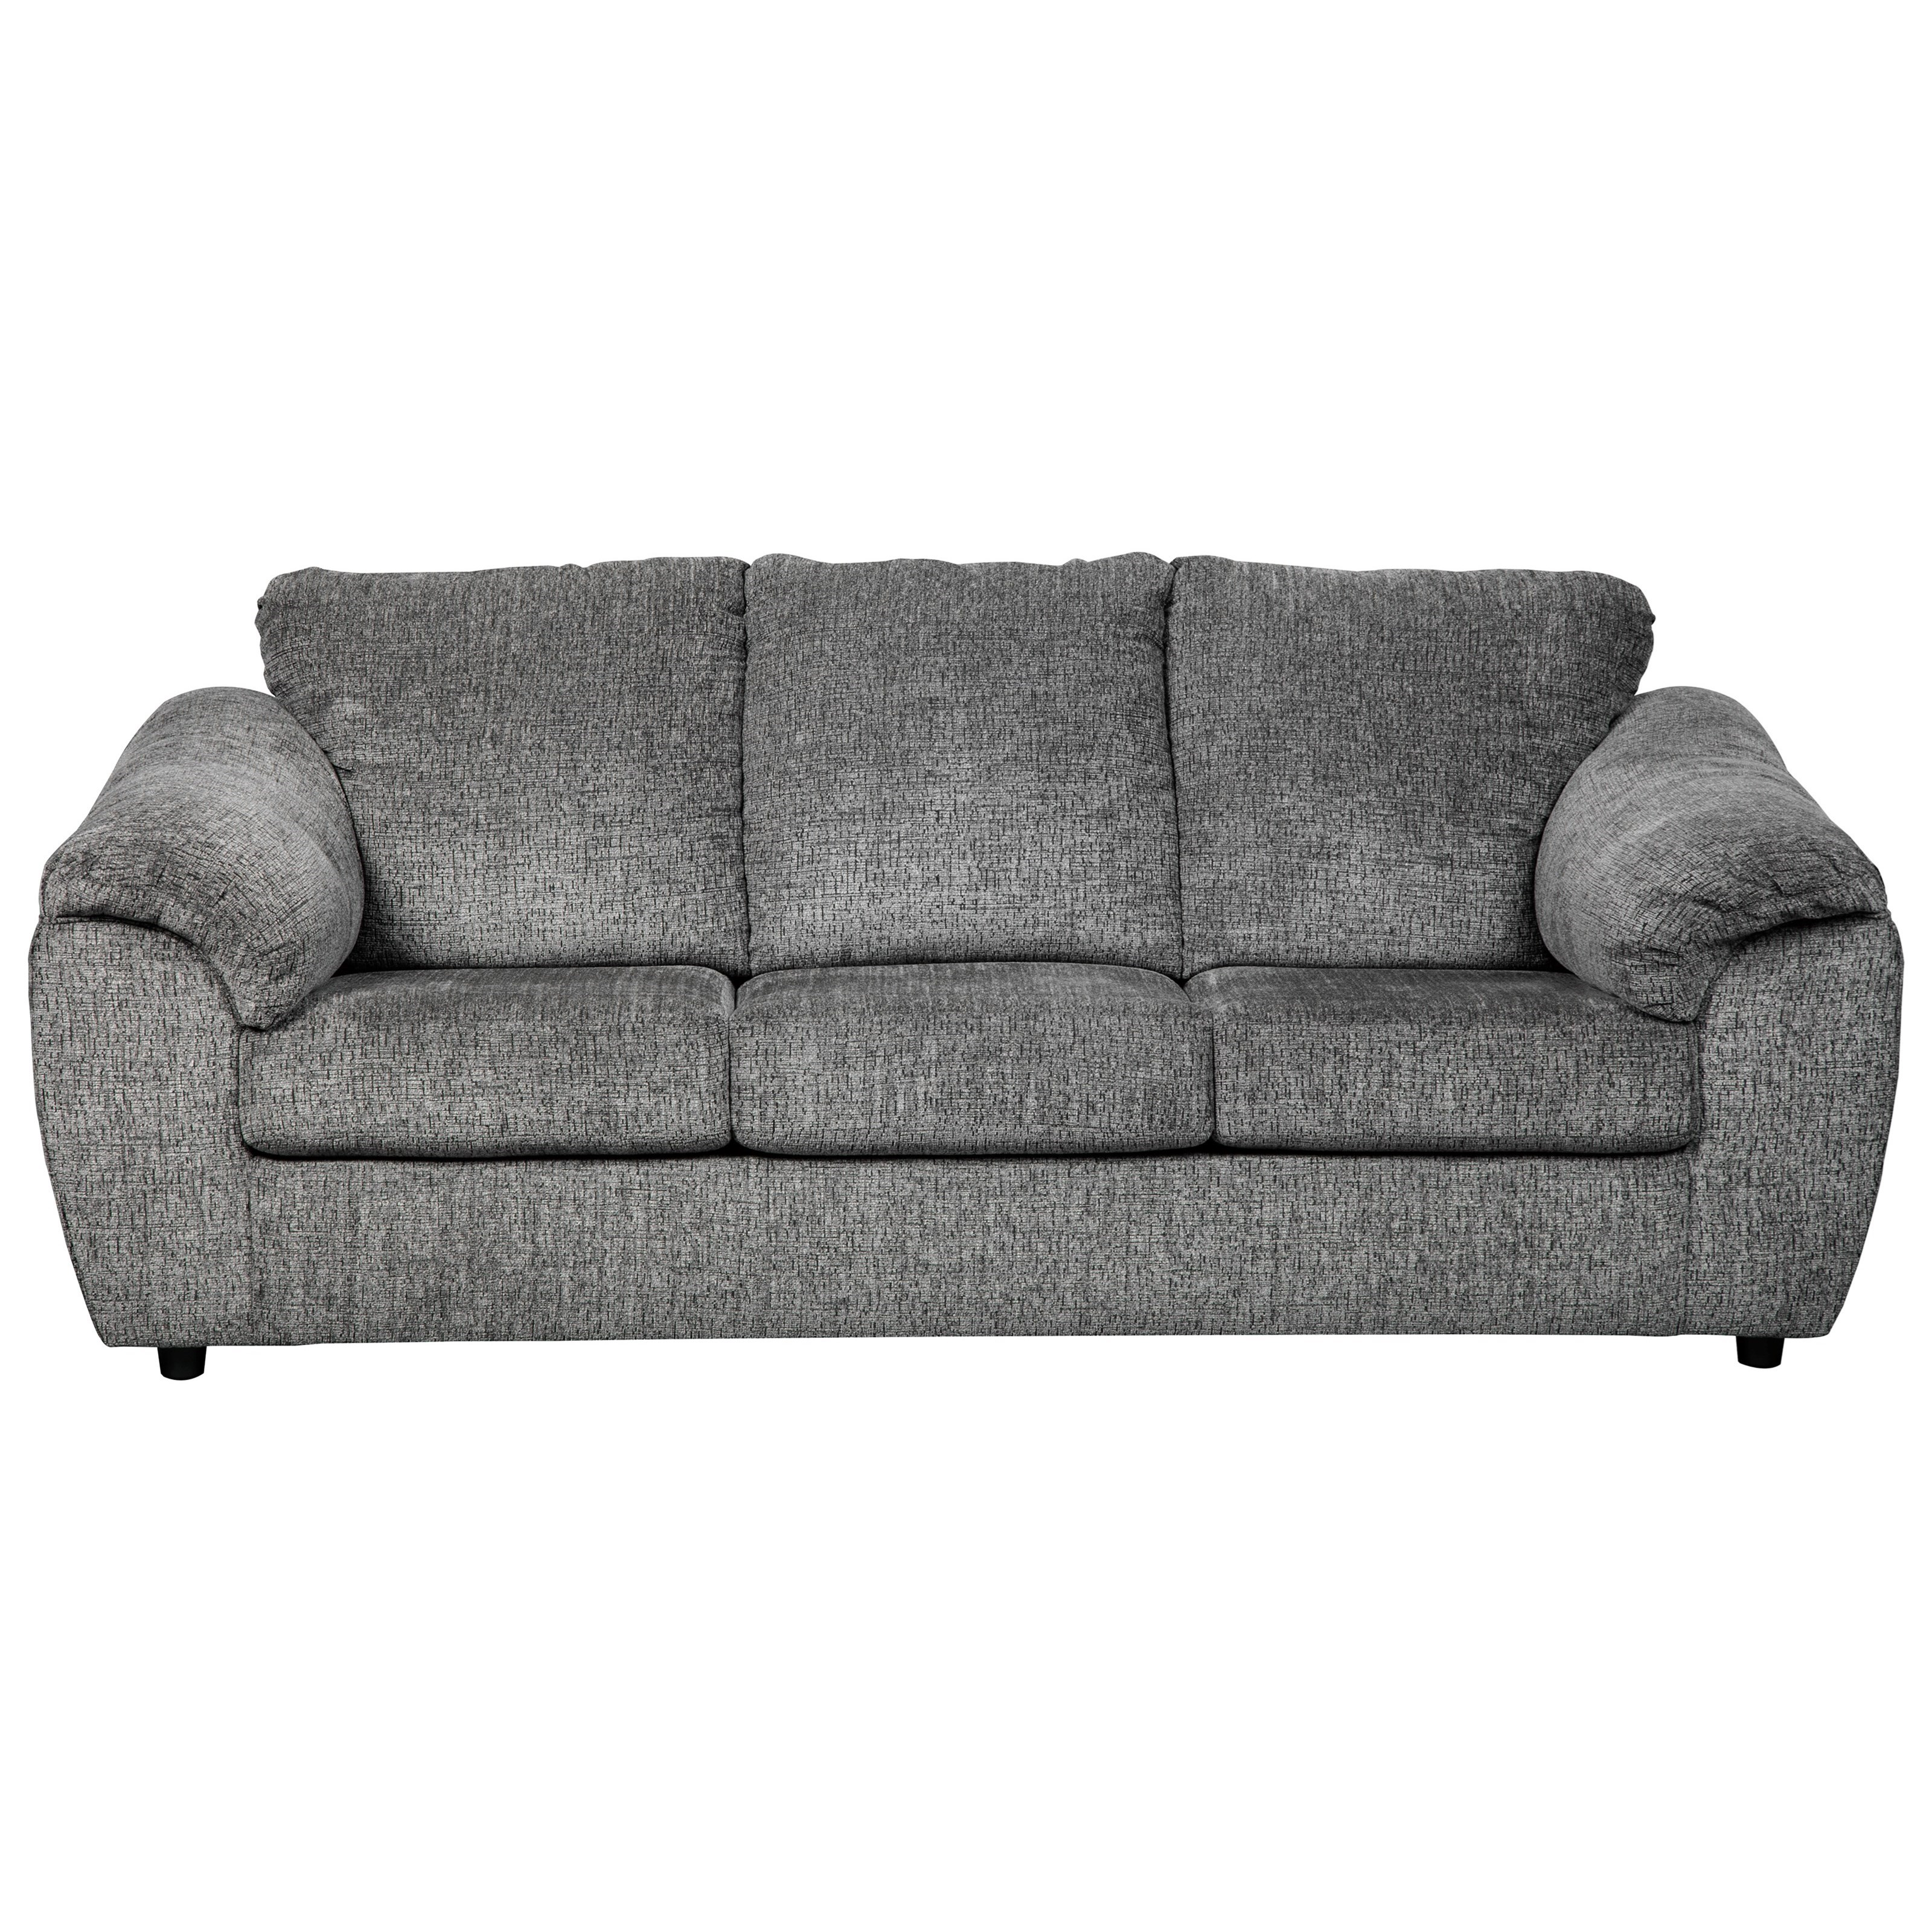 Signature Design by Ashley Azaline Full Sofa Sleeper - Item Number: 9320236